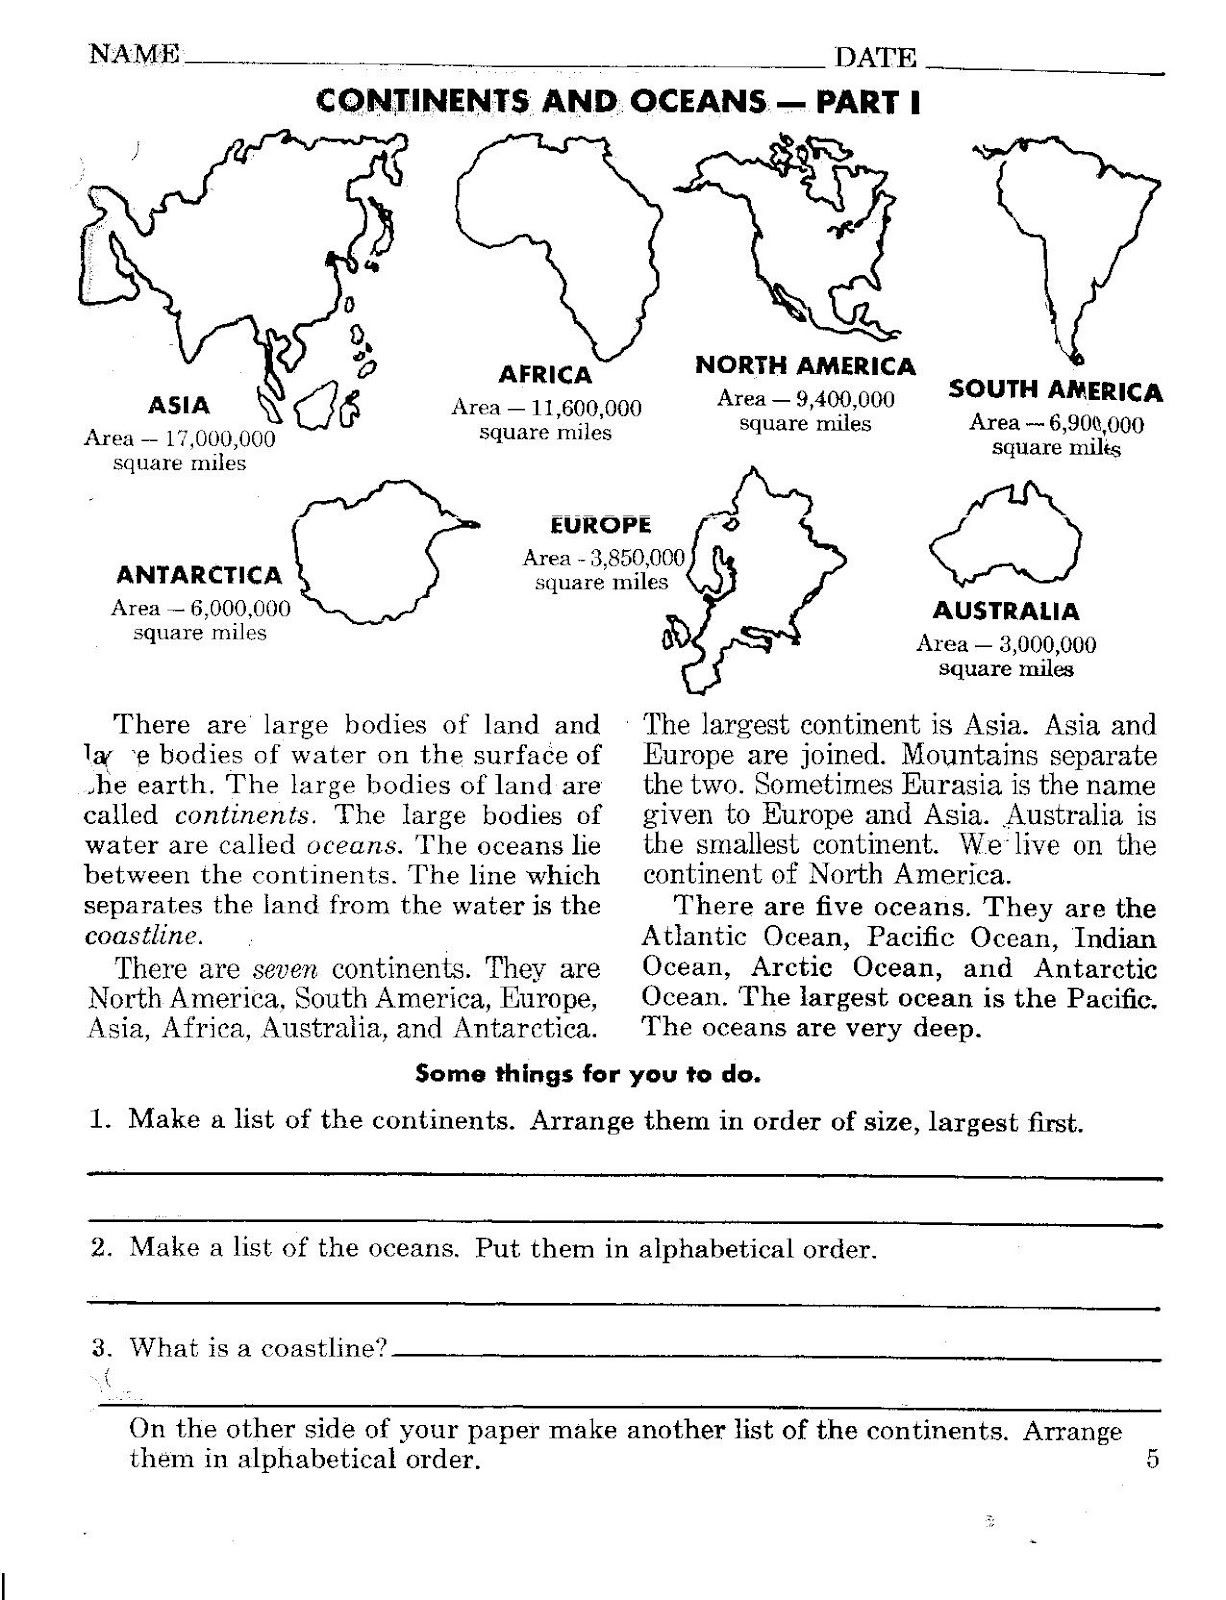 Oceans and Continents Worksheets Printable Continents and Oceans Worksheets